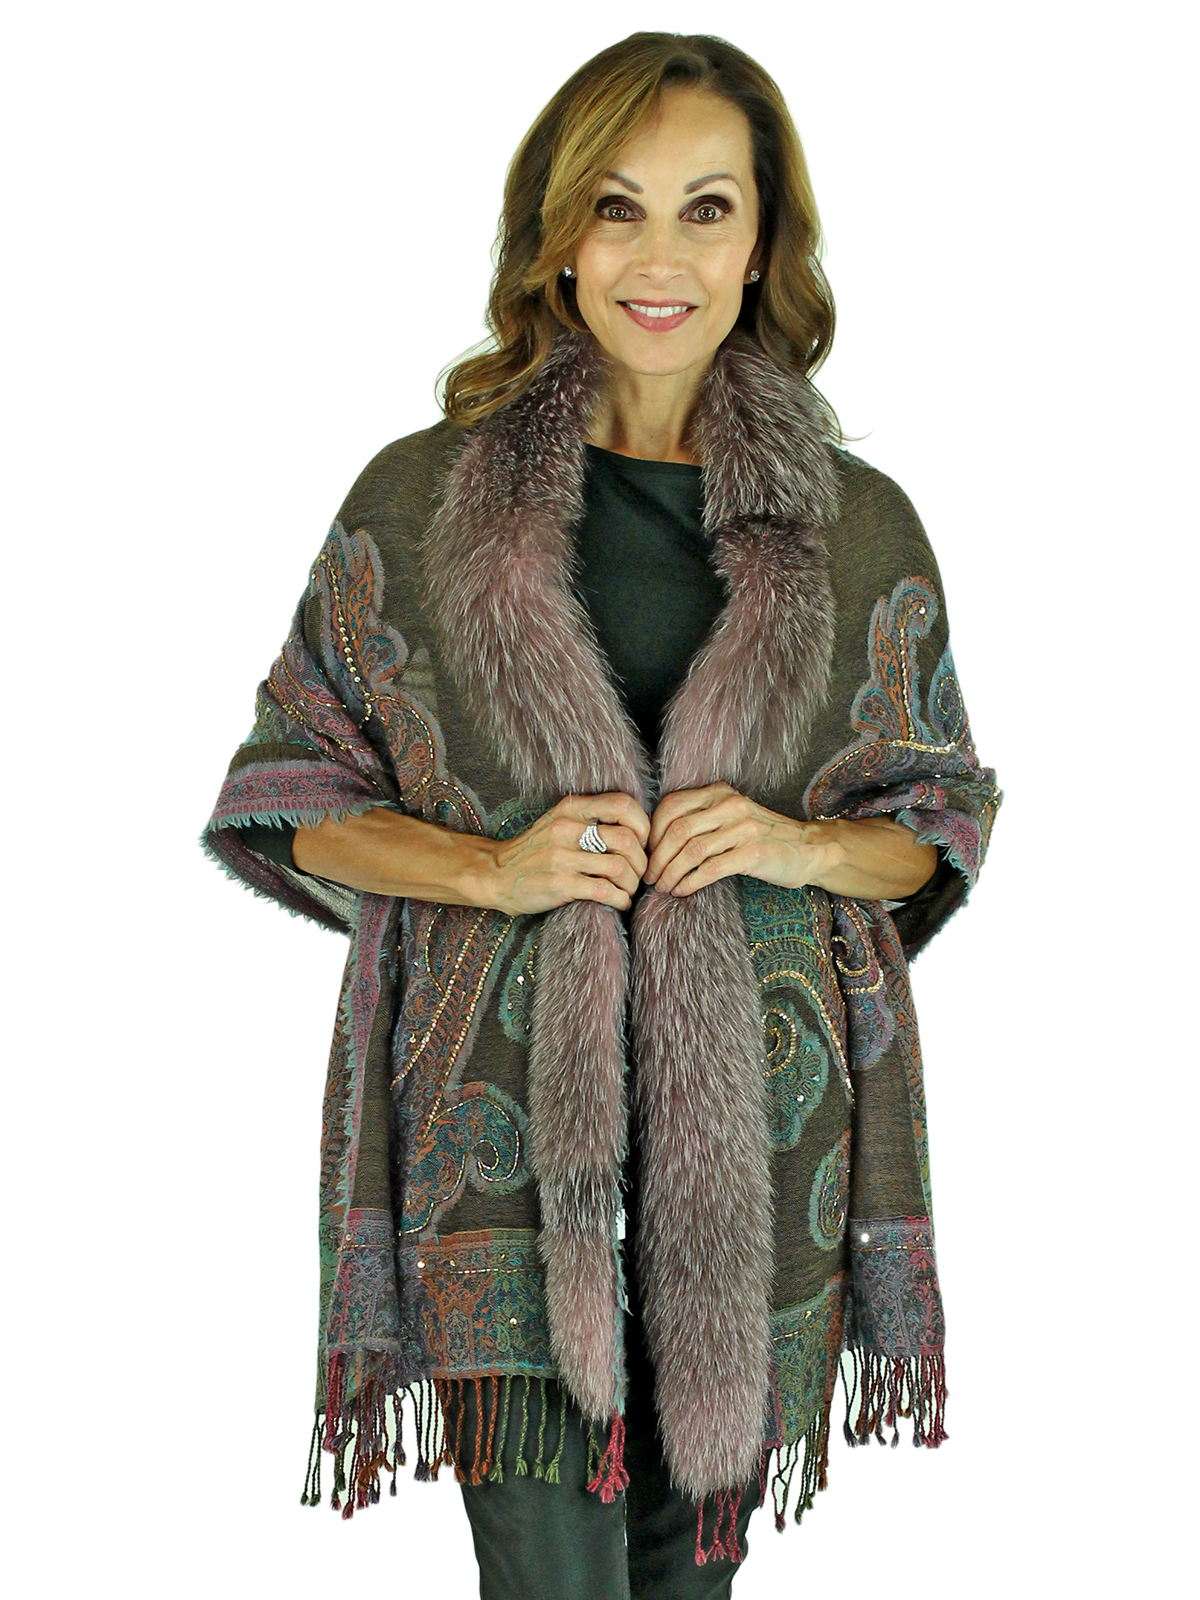 Woman's Multi Colored Woven Wool Shawl with Fox Trim